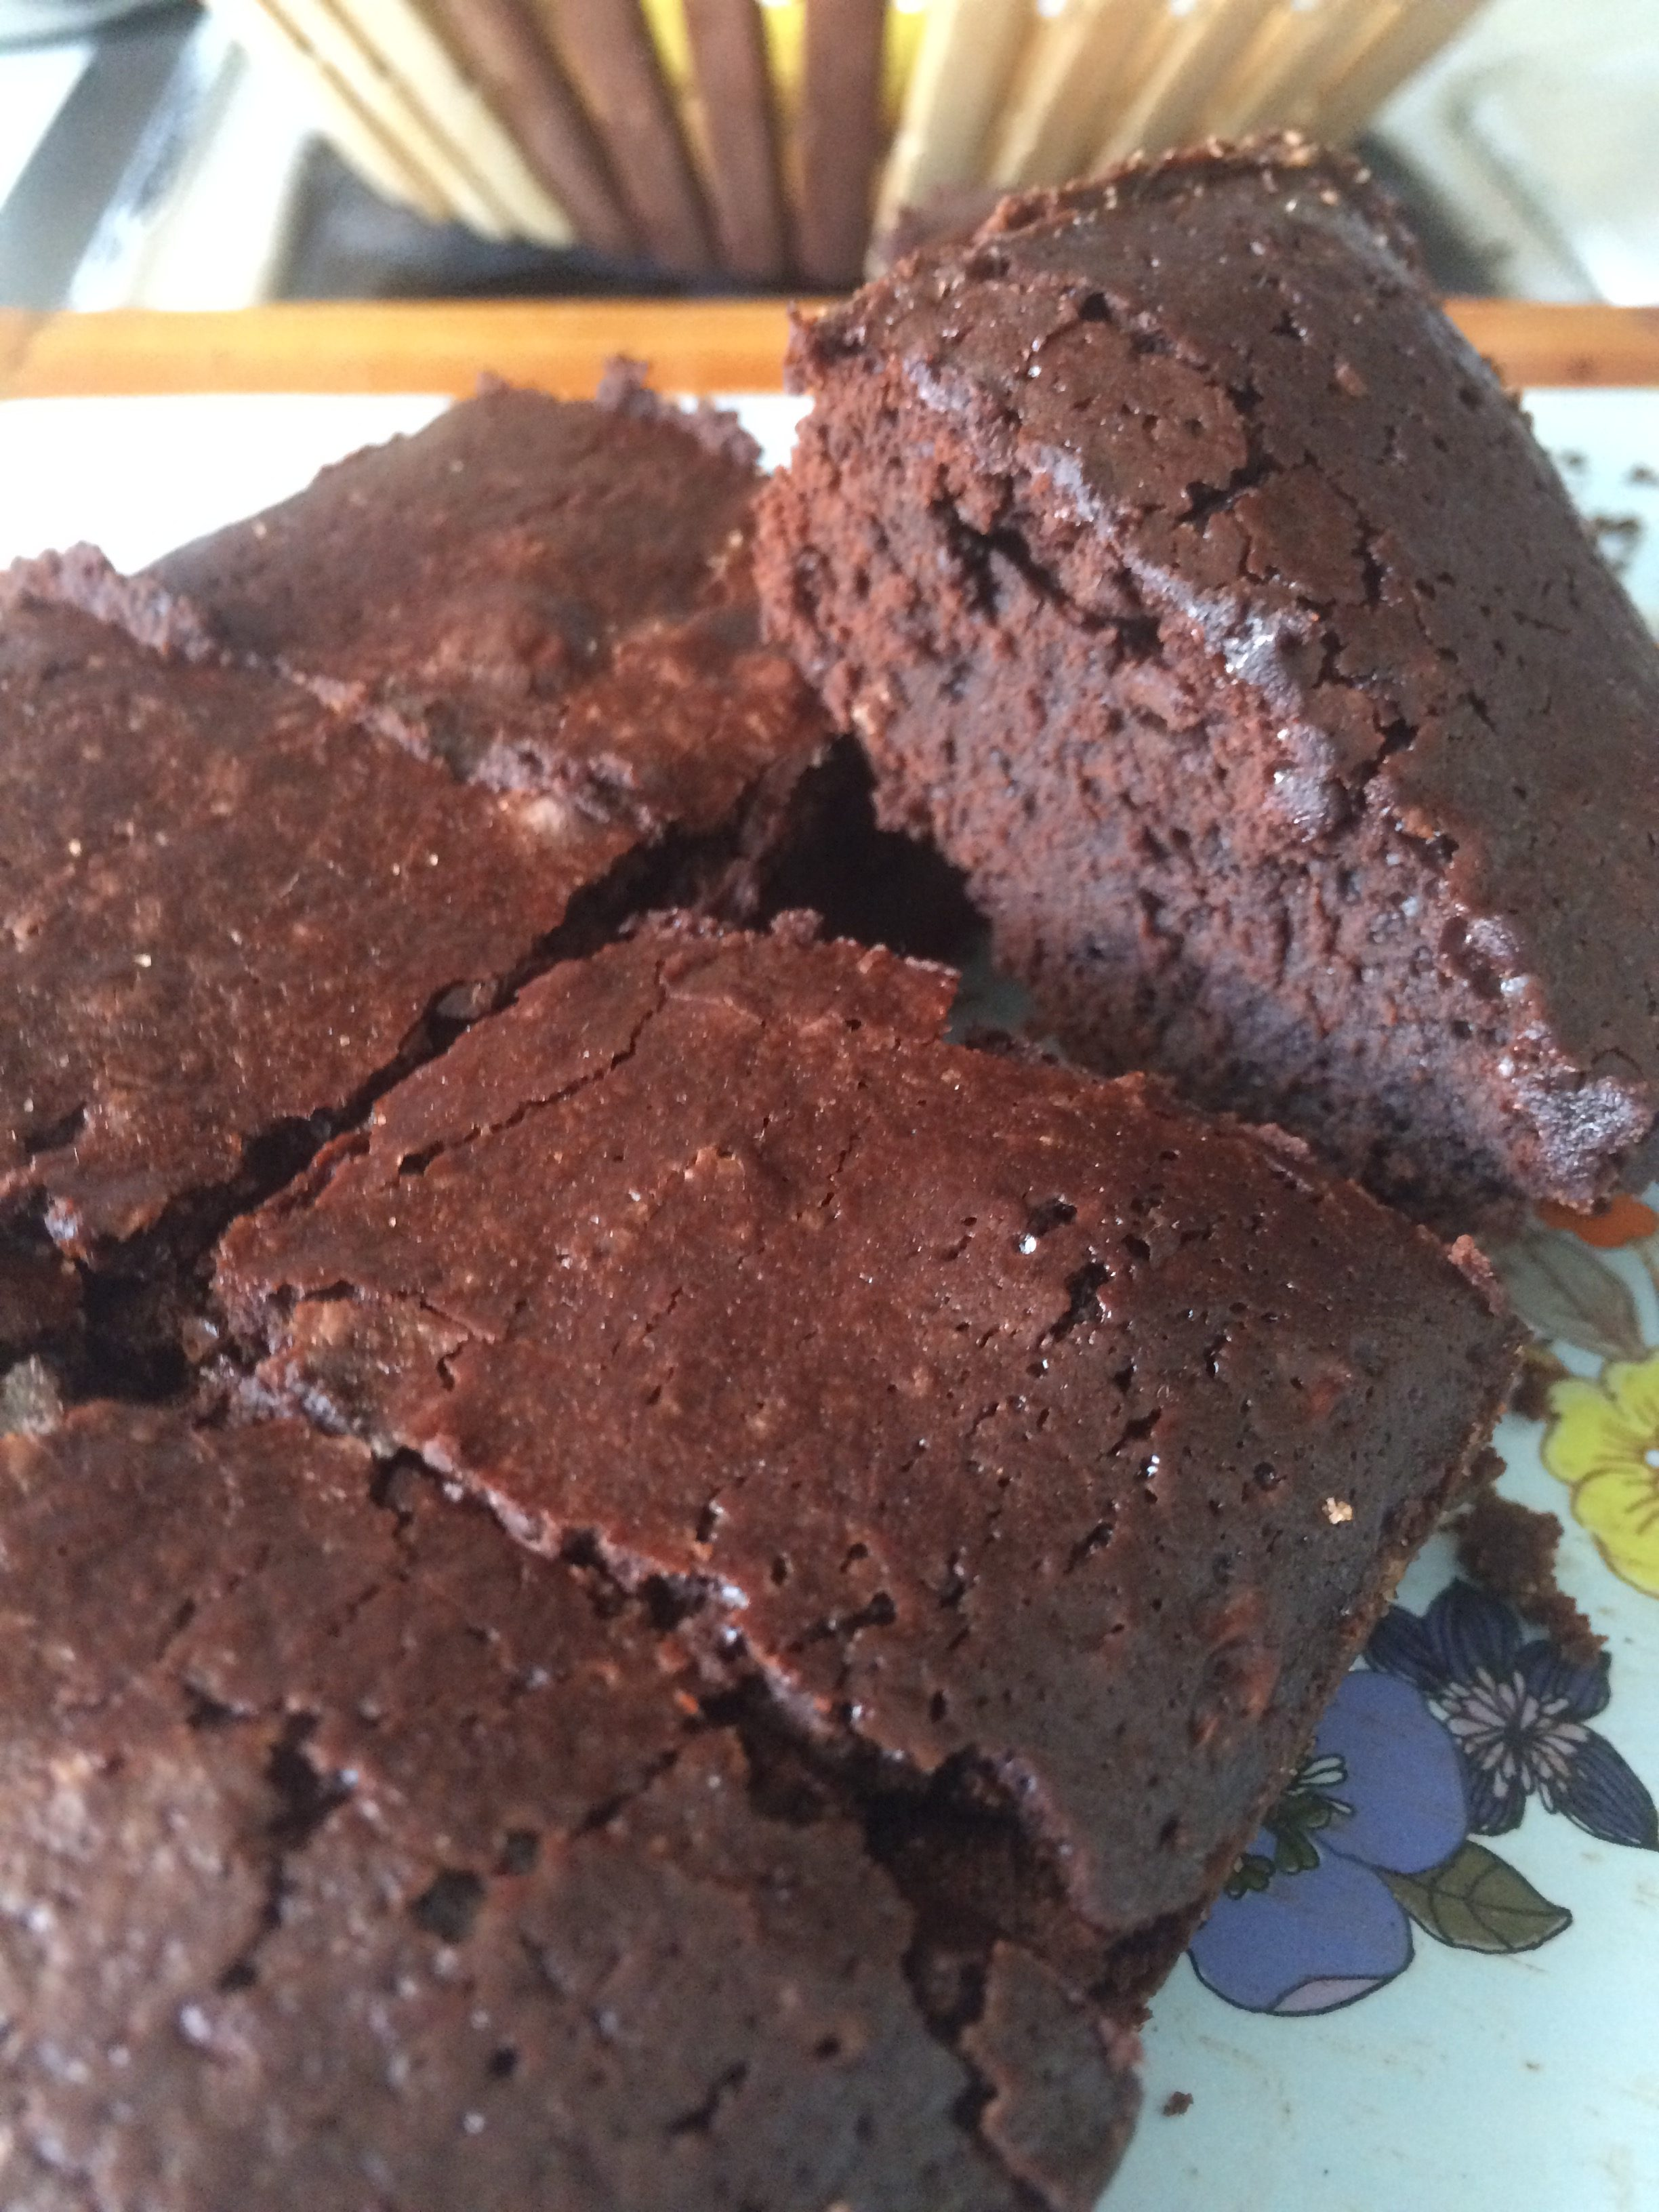 Fudgy brownie de cacao